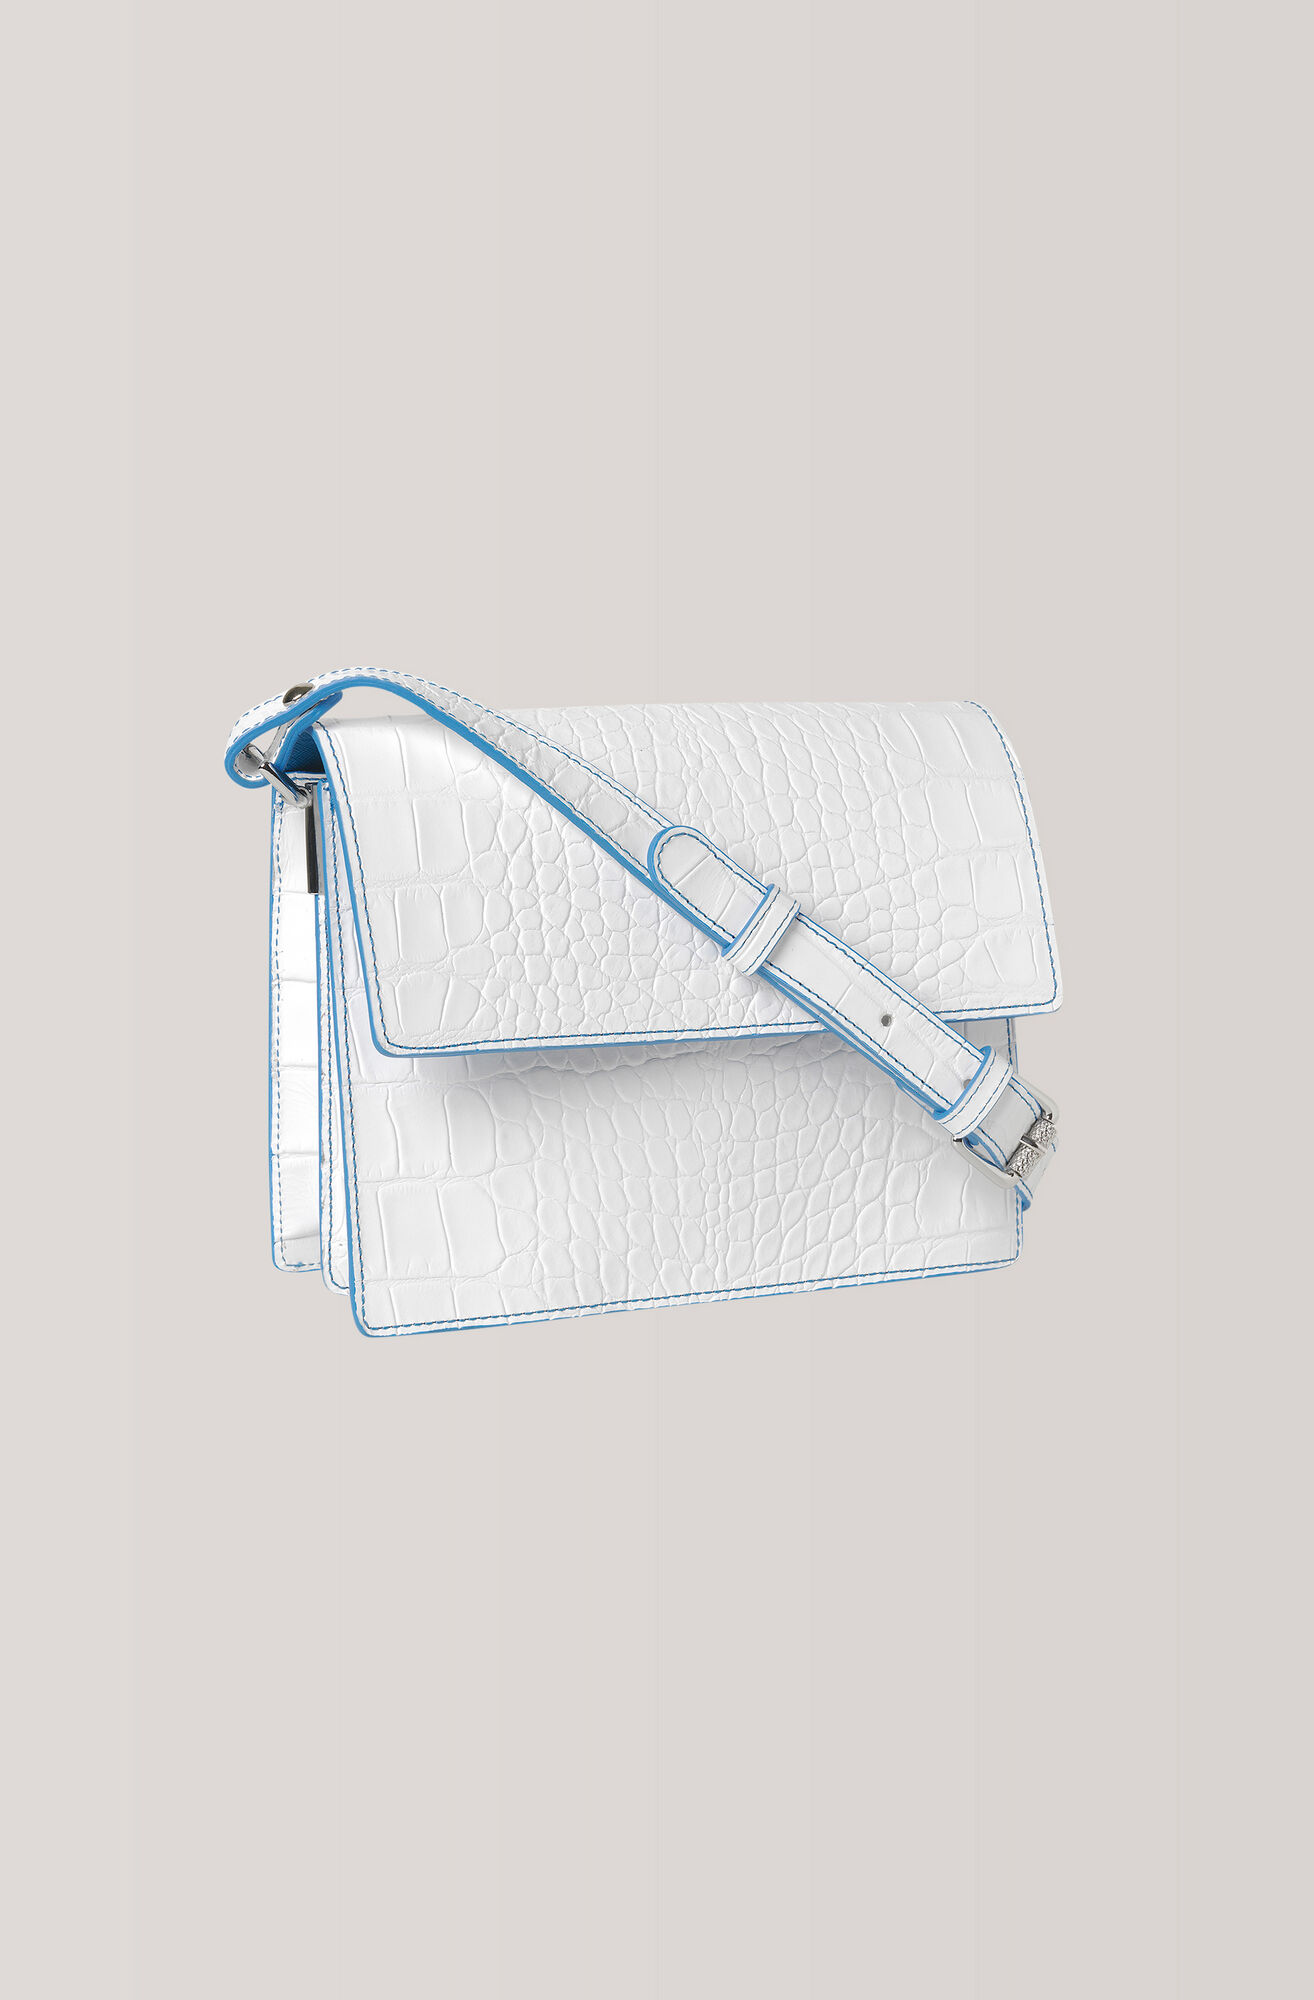 Gallery Accessories Bag, Bright White, hi-res